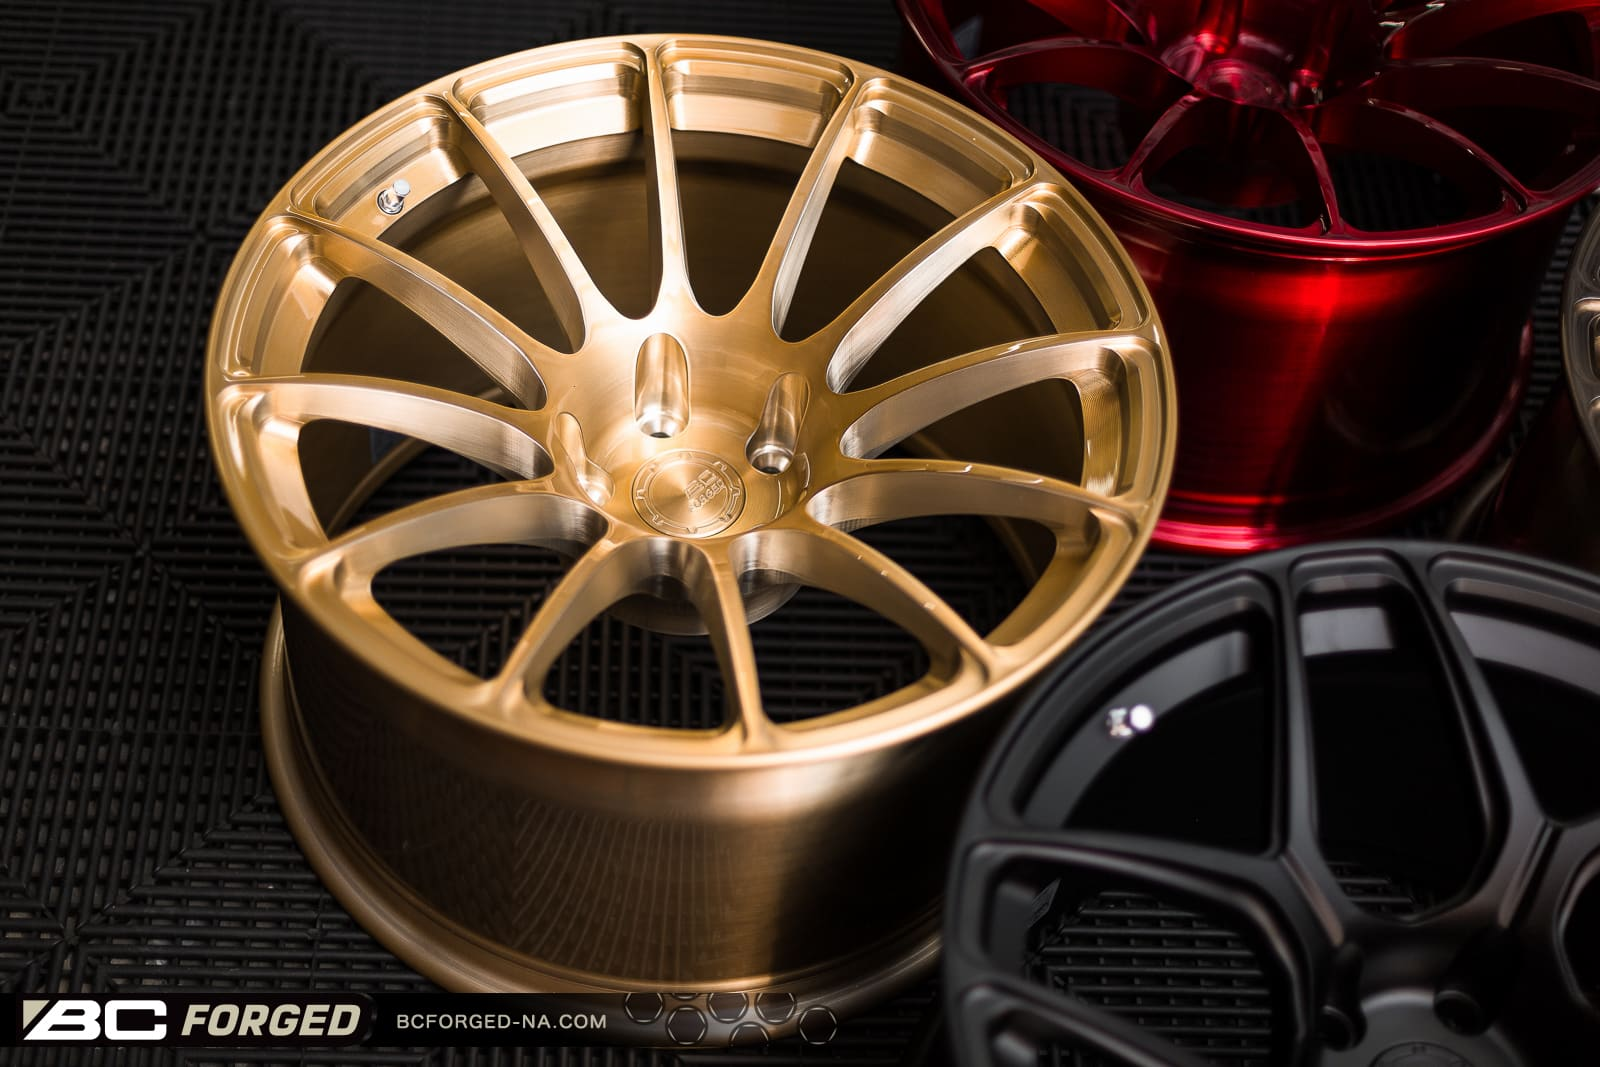 bc-forged-rs43-brushed-gold-monoblock-concave-wheels.jpg